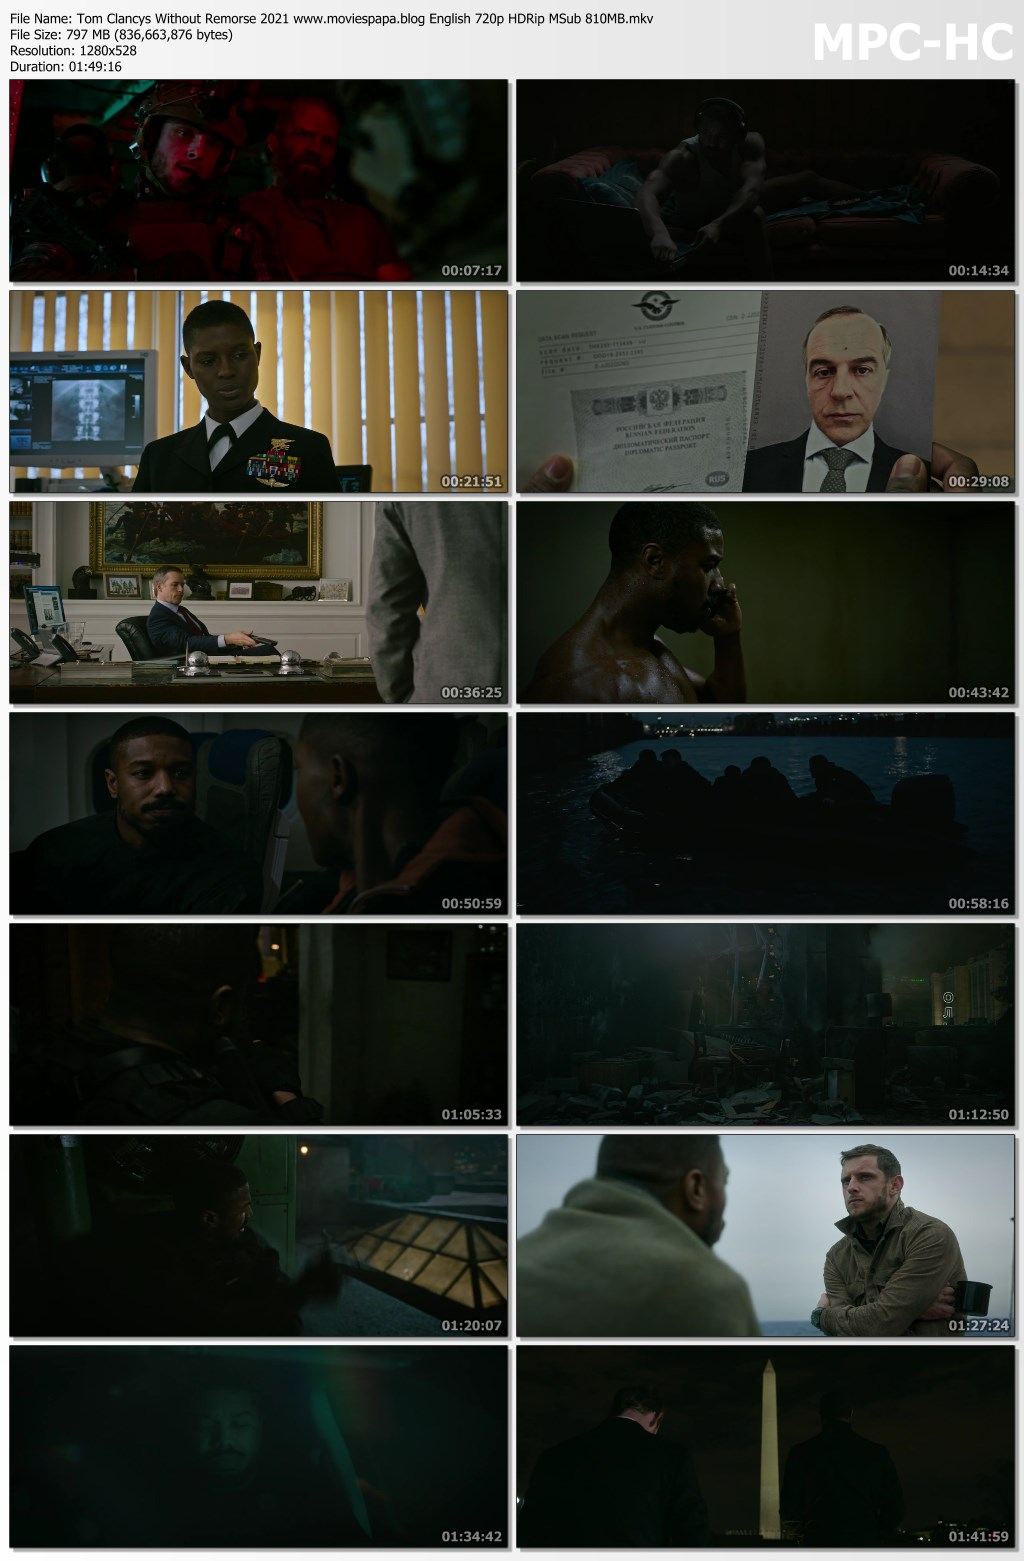 Tom Clancy's Without Remorse 2021 screenshot HDMoviesFair